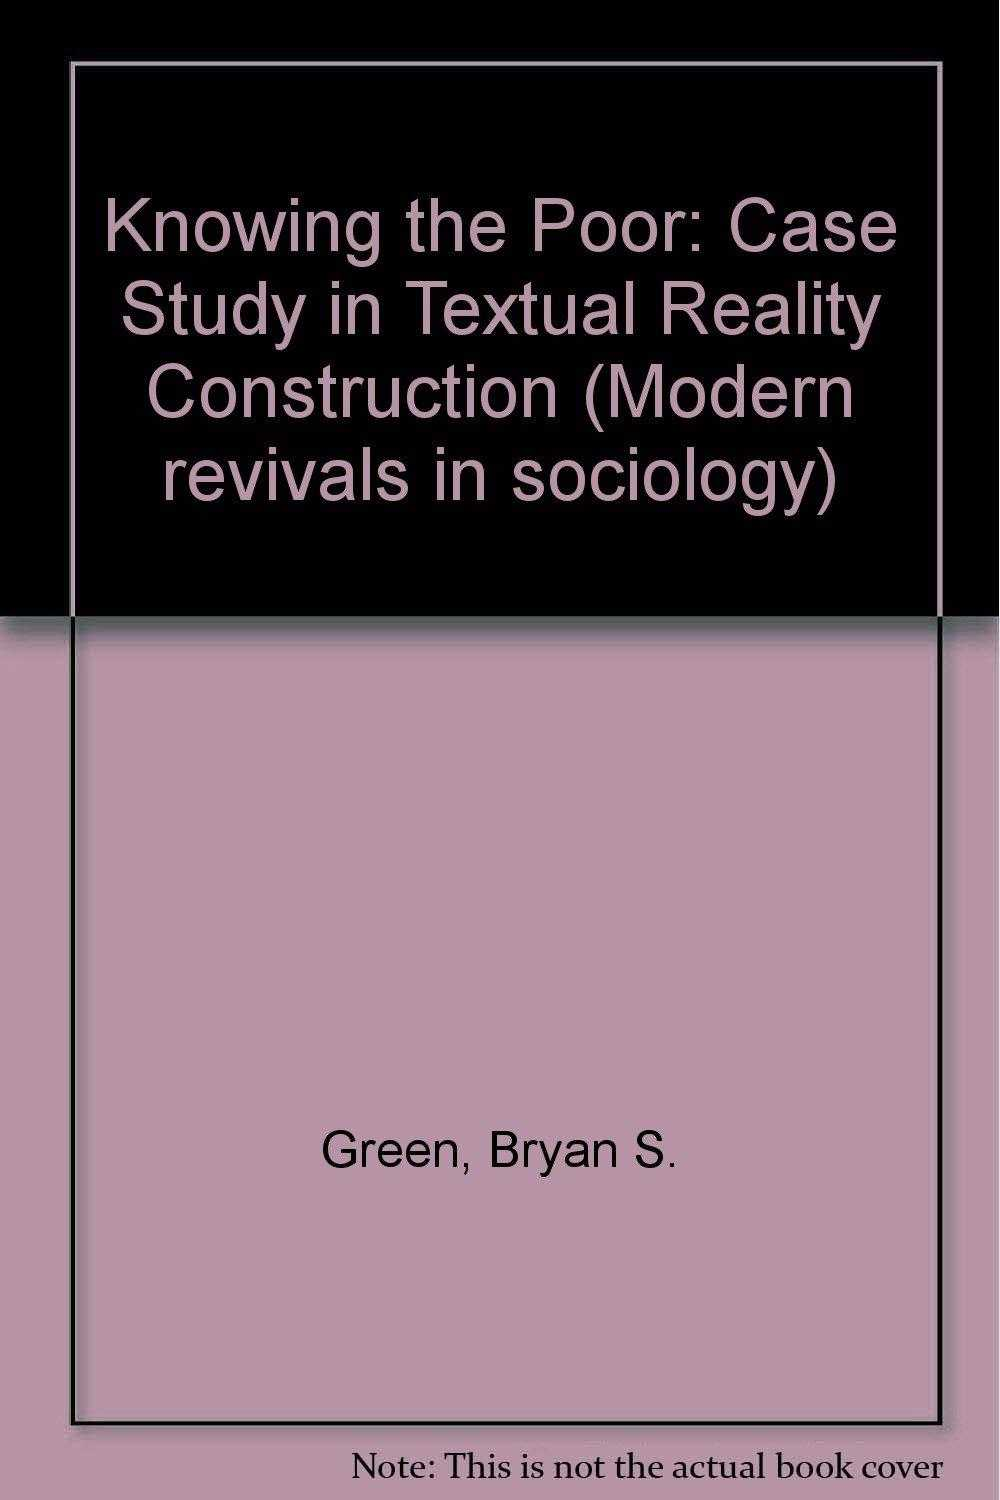 GREEN, BRYAN S. - Knowing the Poor: Case Study in Textual Reality Construction